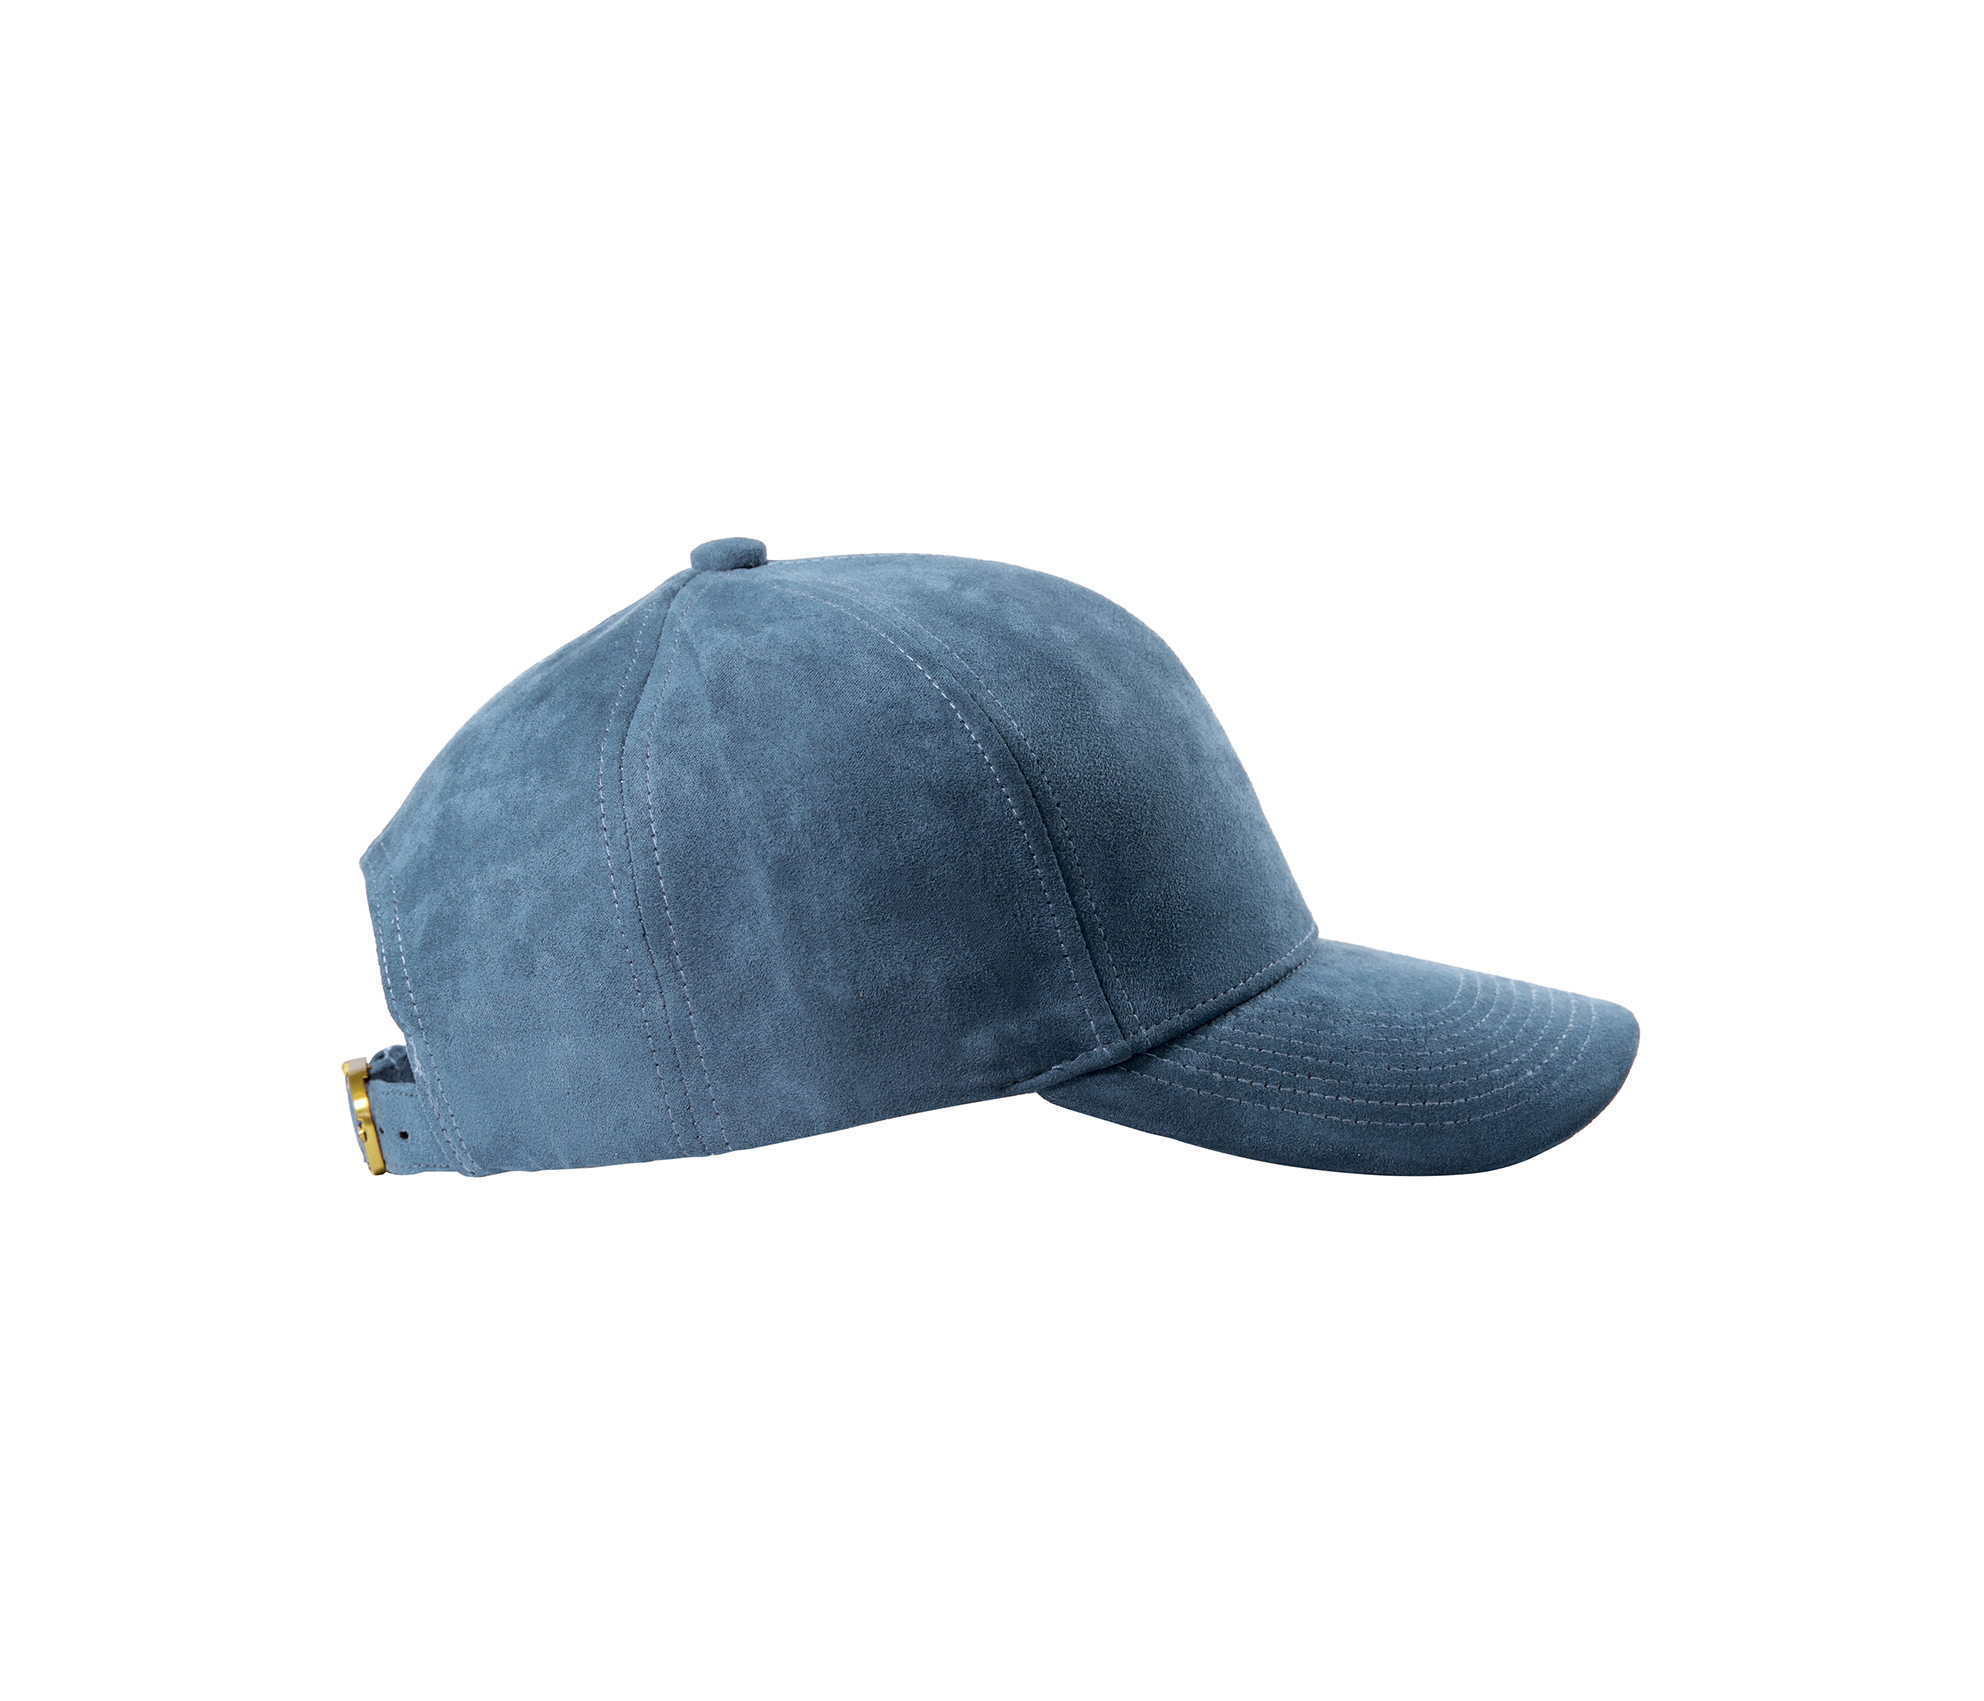 BASEBALL CAP SKY BLUE SUEDE SIDE